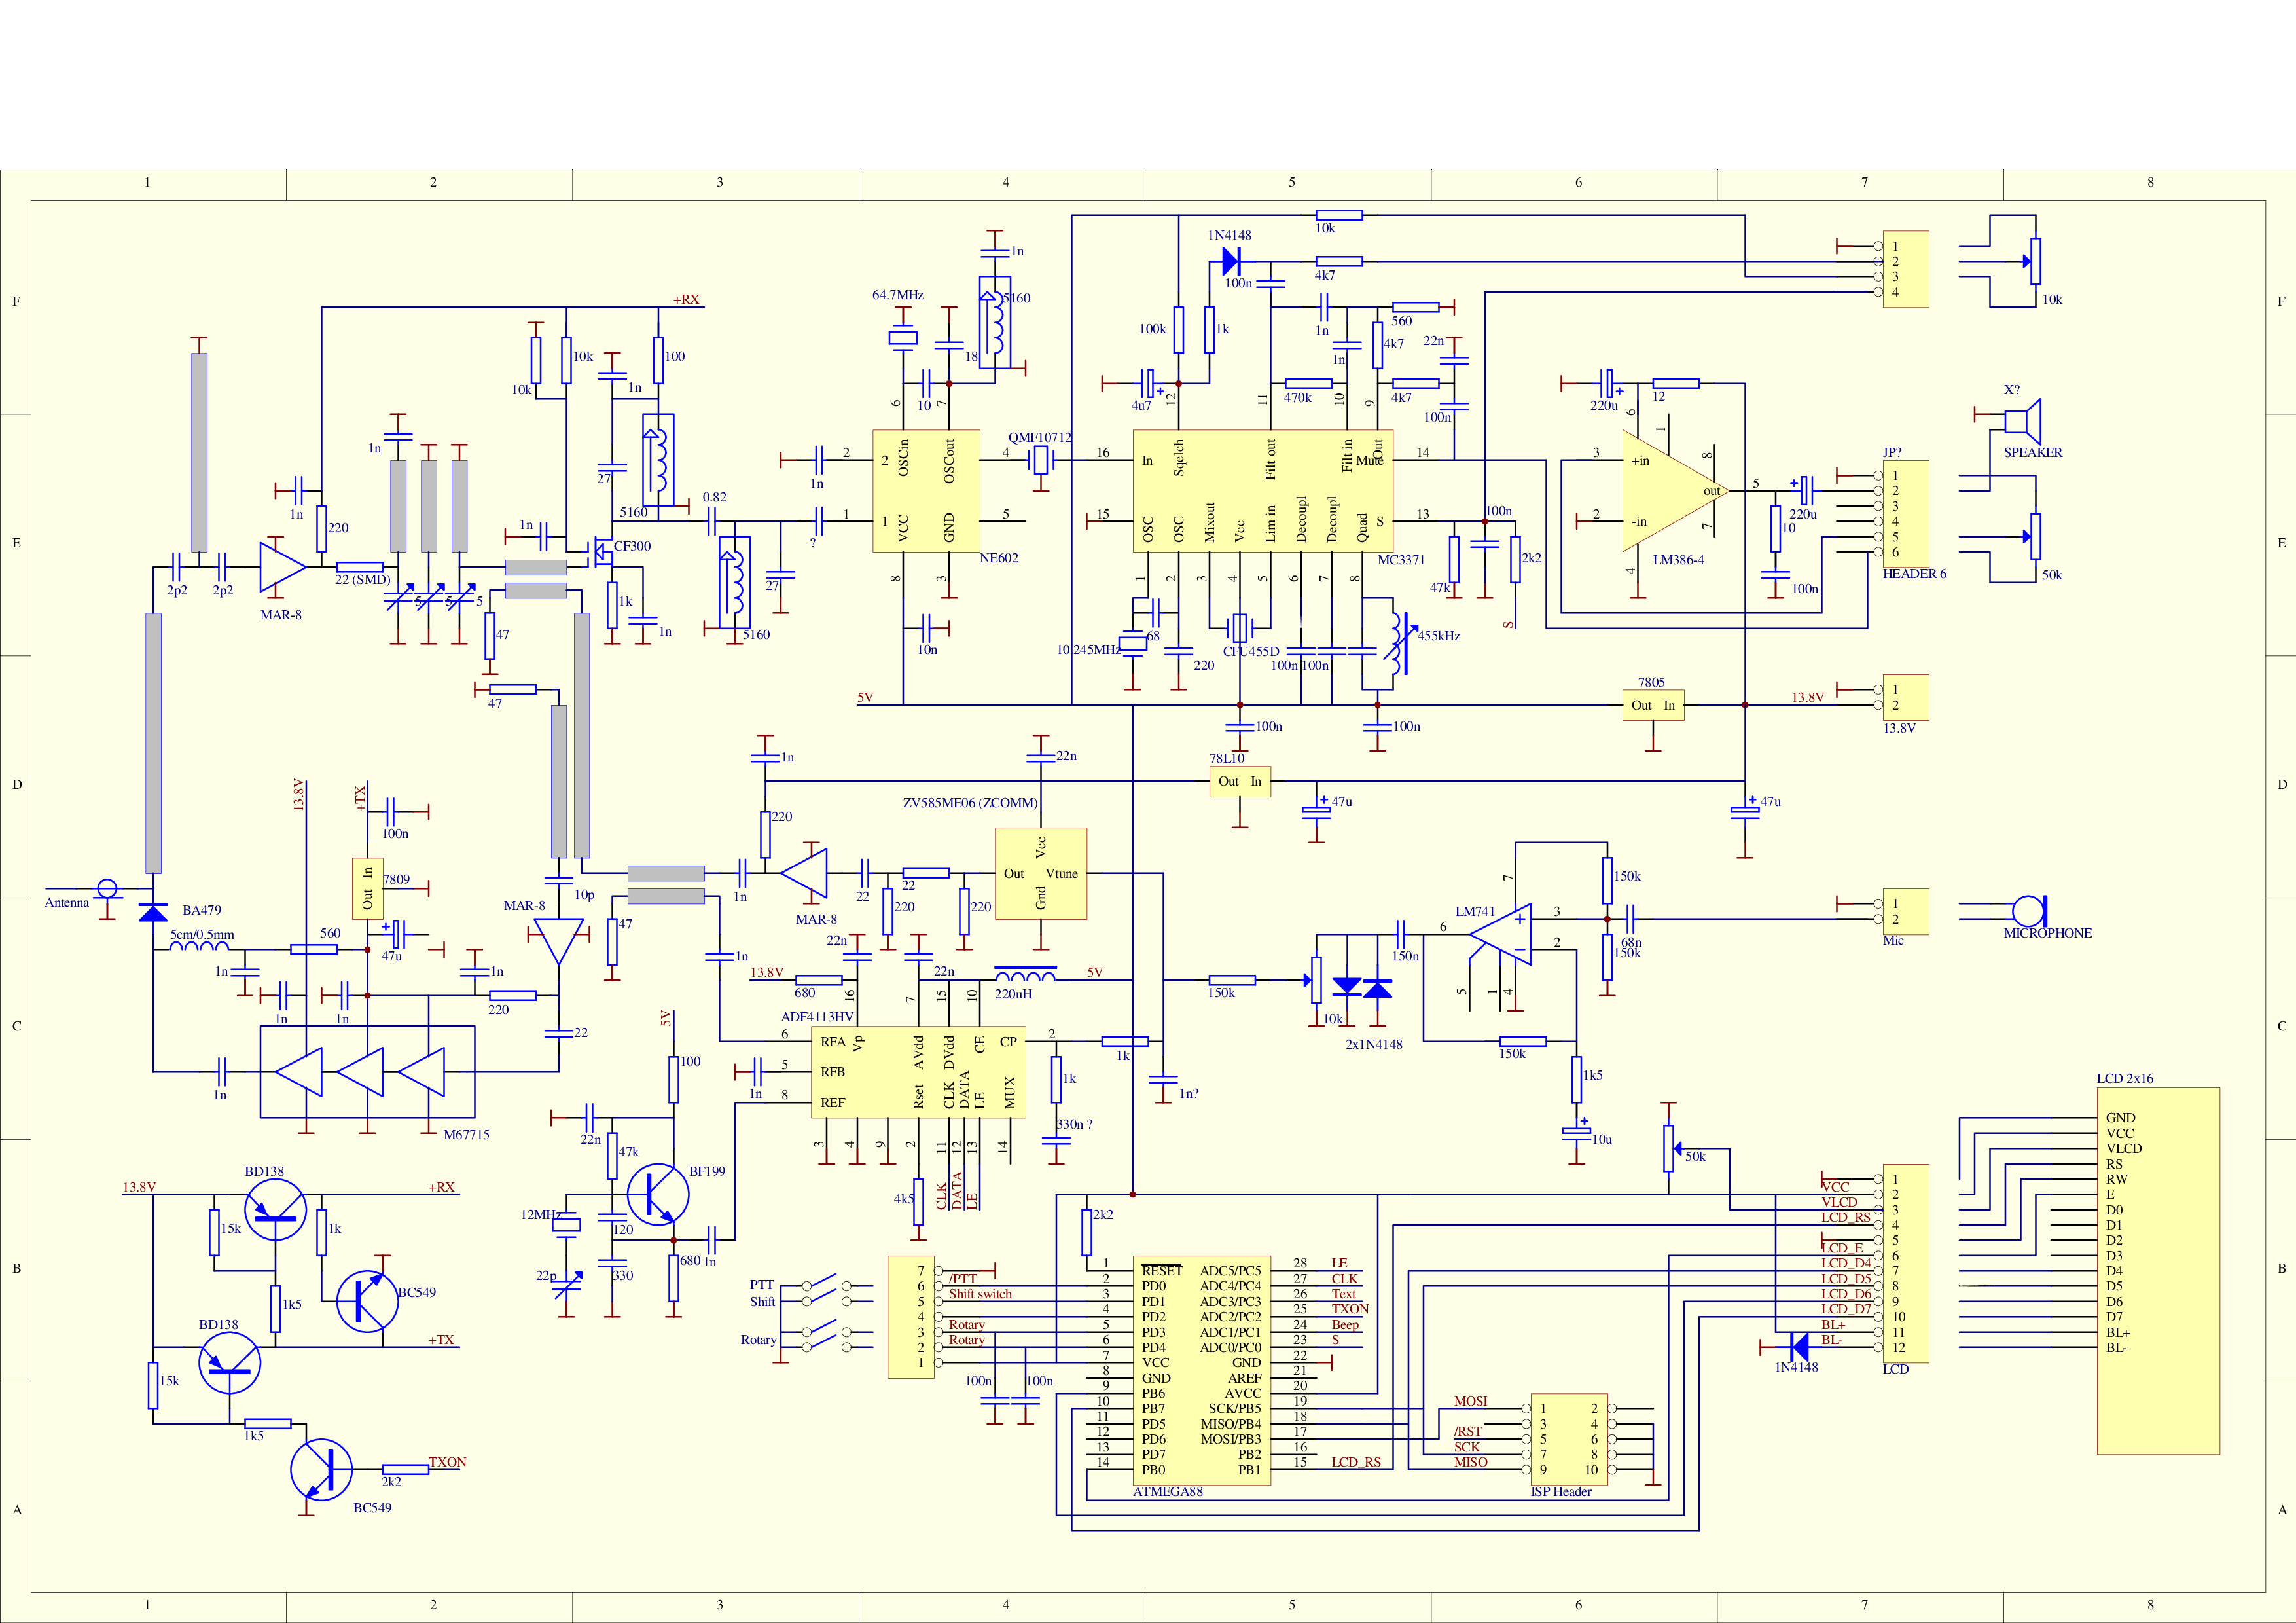 mc3371 circuit with 23cmfm on 118synt as well 23cmfm likewise 4 Band Double Tuned Preselector L620 likewise 7C 7Cdatasheetoo   7Cwp Content 7Cuploads 7C2009 7C09 7CLM555 Pinout And Connection Diagram in addition